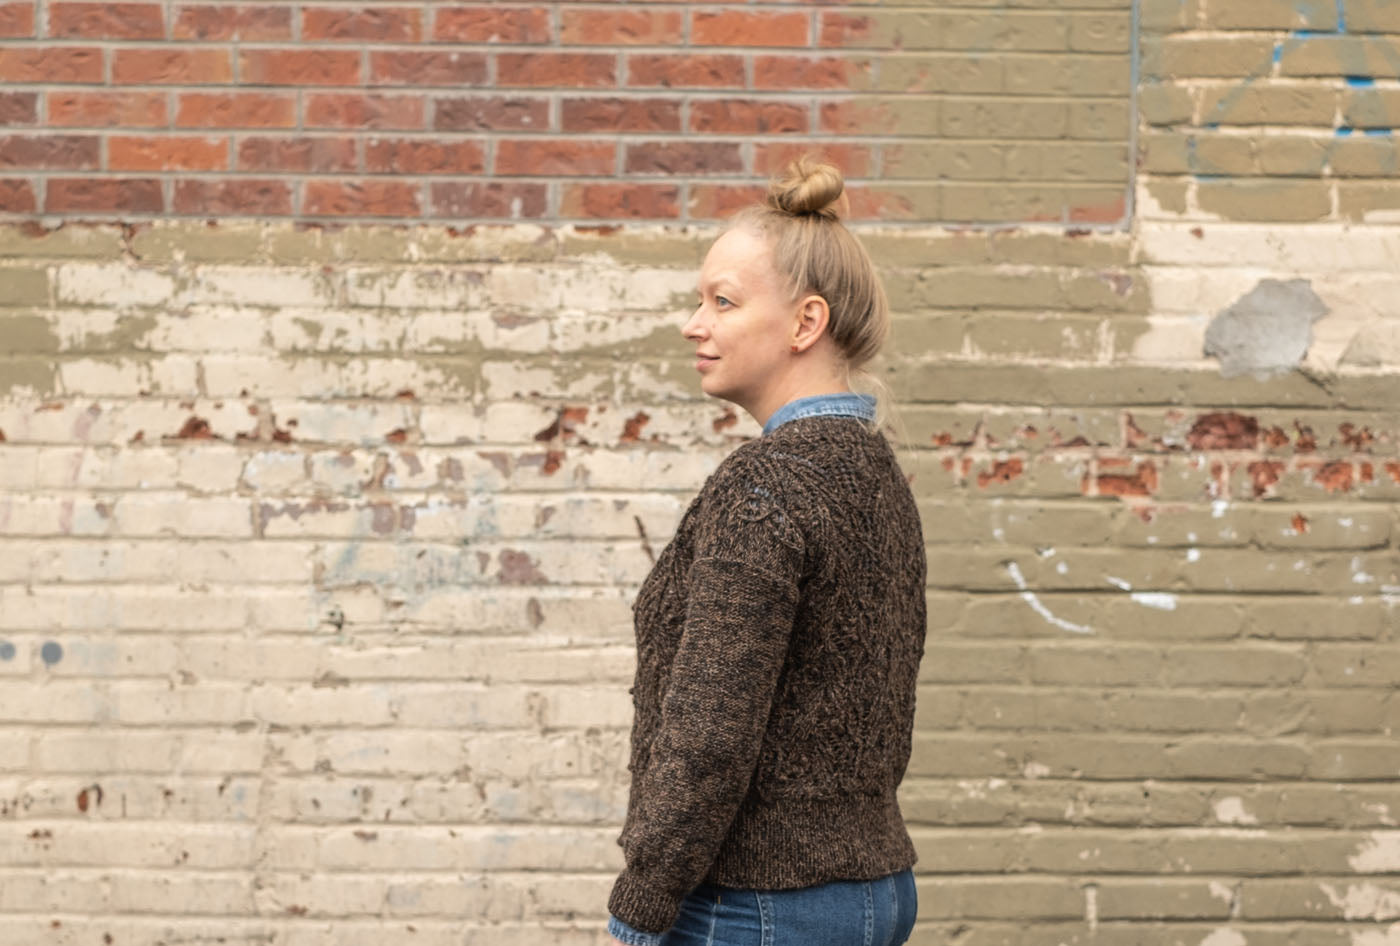 Amber stands in front of a taupe painted wall, looking off to the left. Her hair is in a topknot. Her brown hand knit sweater has long sleeves with a simple reverse stockinette stitch pattern, while the body of the sweater is intricately textures in a pattern of lace, cables and bobbles.